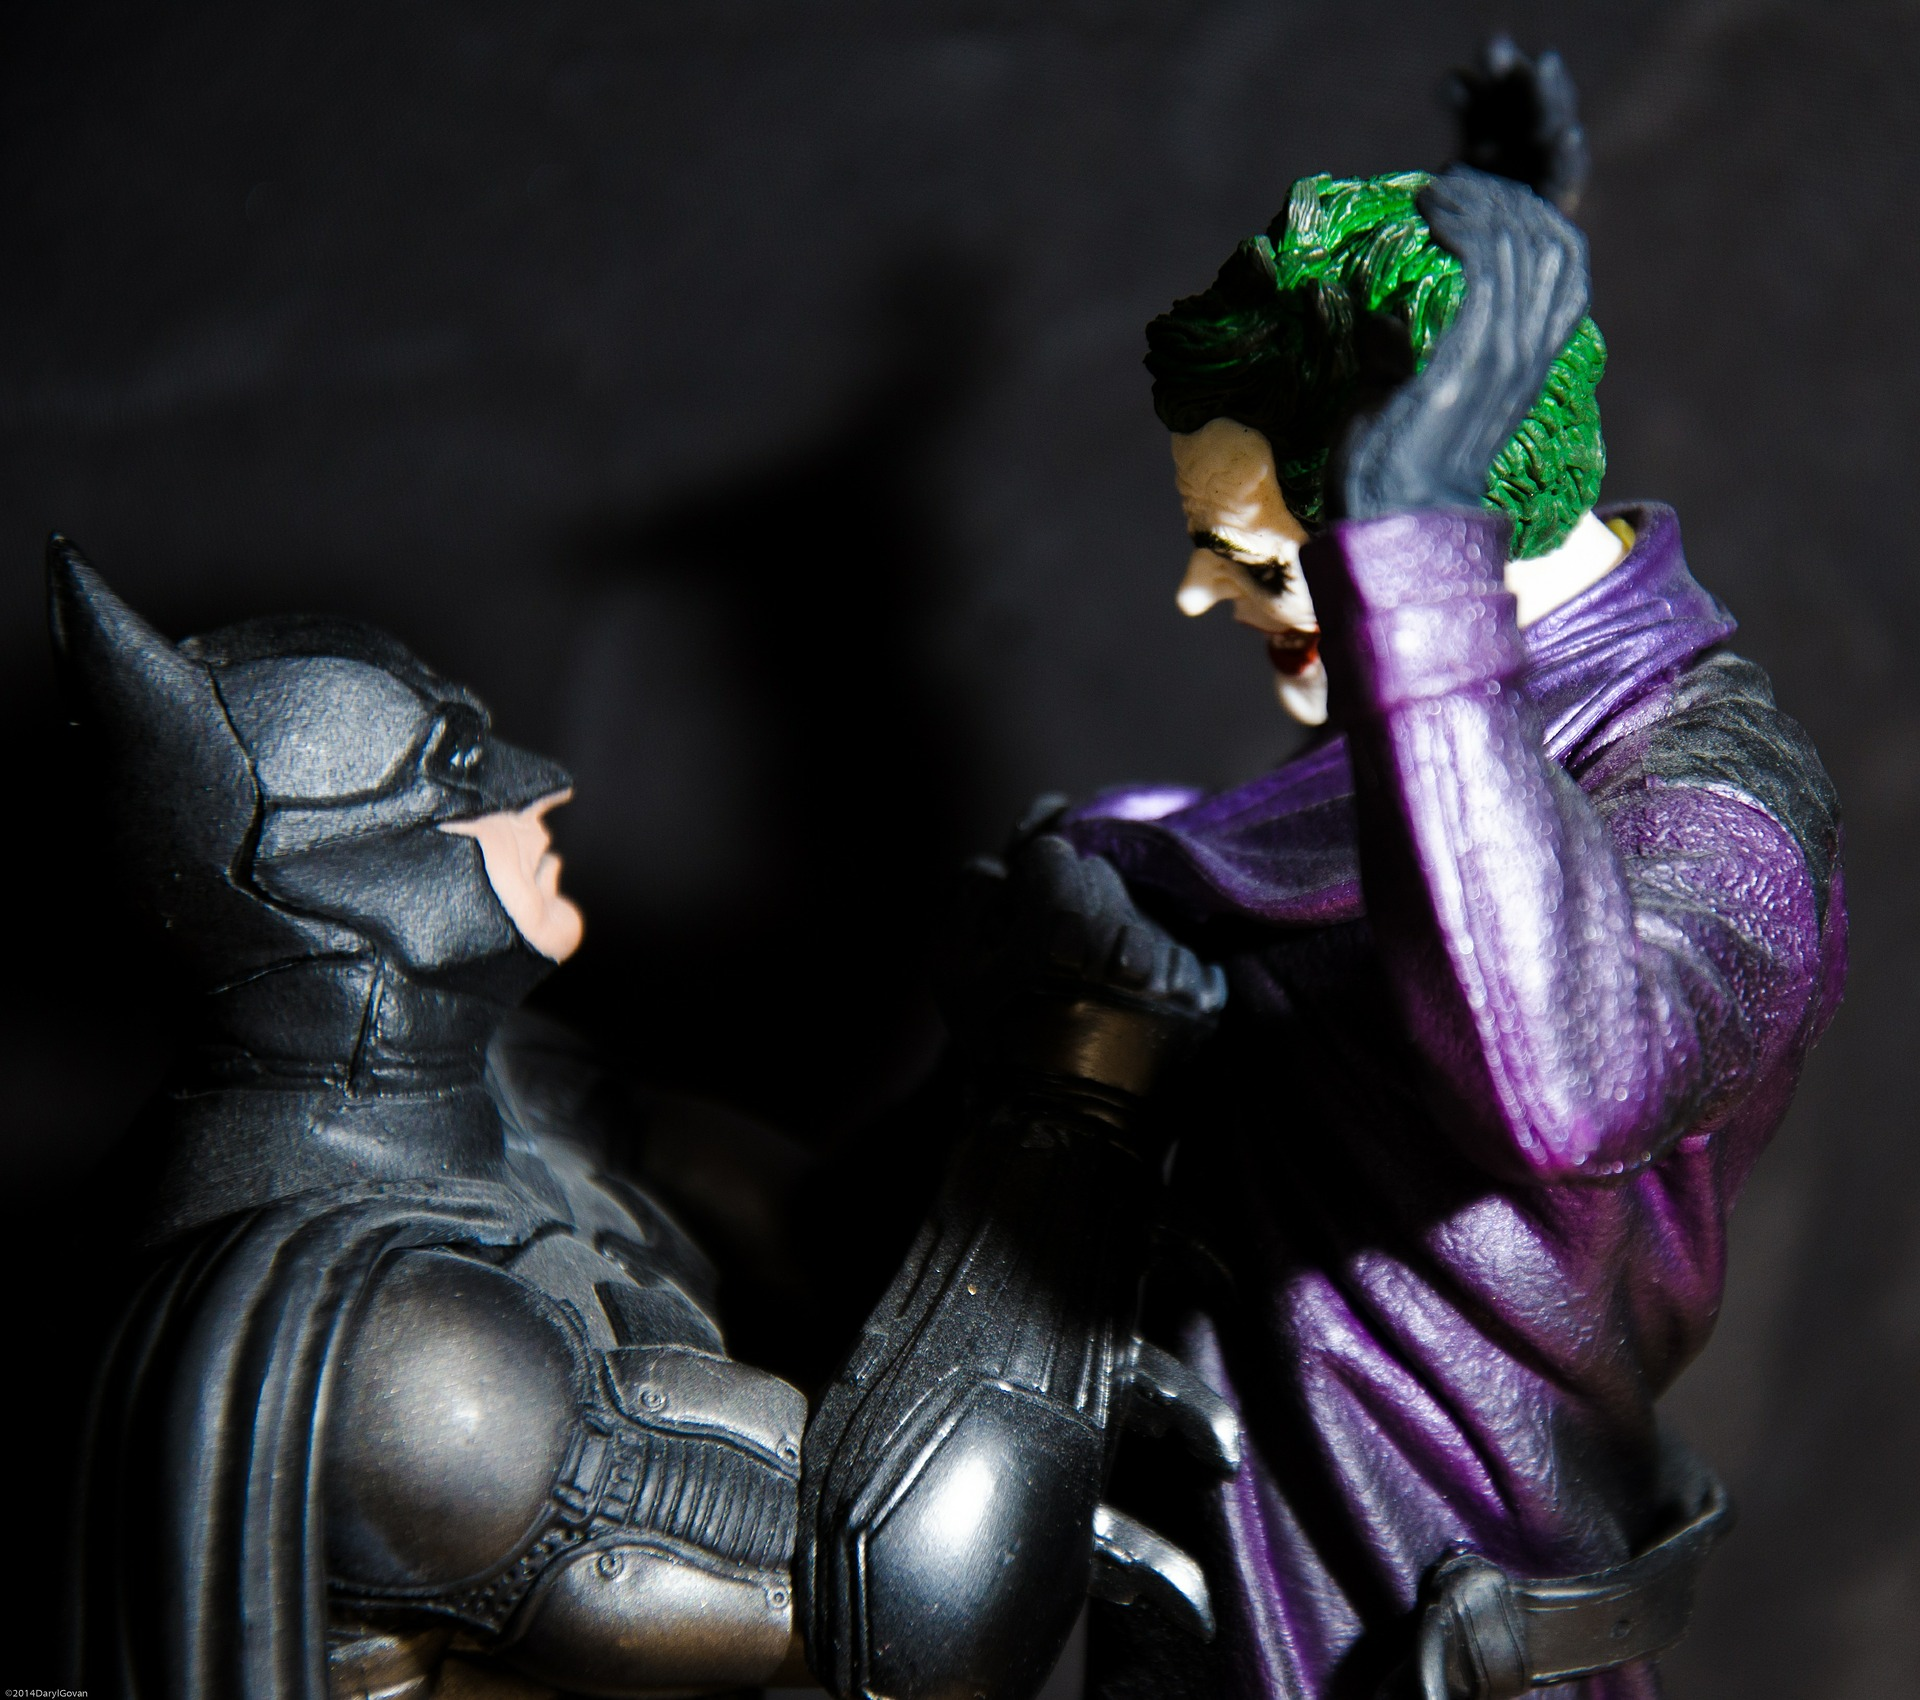 United States v. Bruce Wayne     18 U.S.C. § 113(a)(3) assault with a dangerous weapon